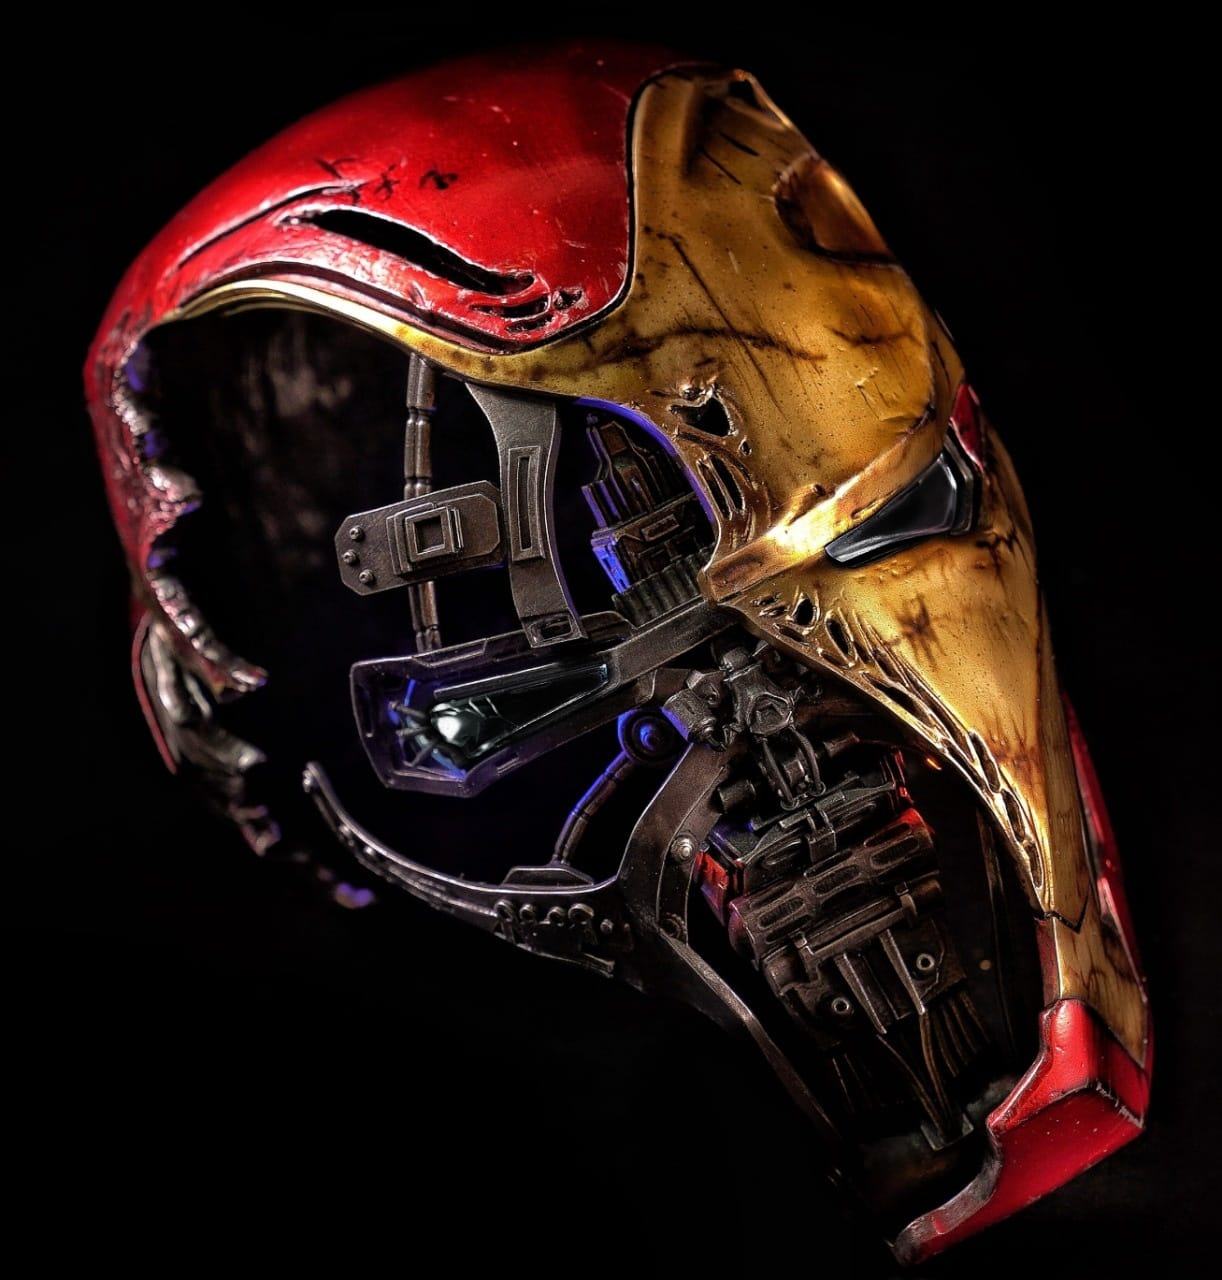 Réplica Capacete Decorativo Homem de Ferro (Iron Man Mark L Battle Damaged): Vingadores Ultimato (Avengers Endgame) Escala 1/1 - (Apenas Venda Online)